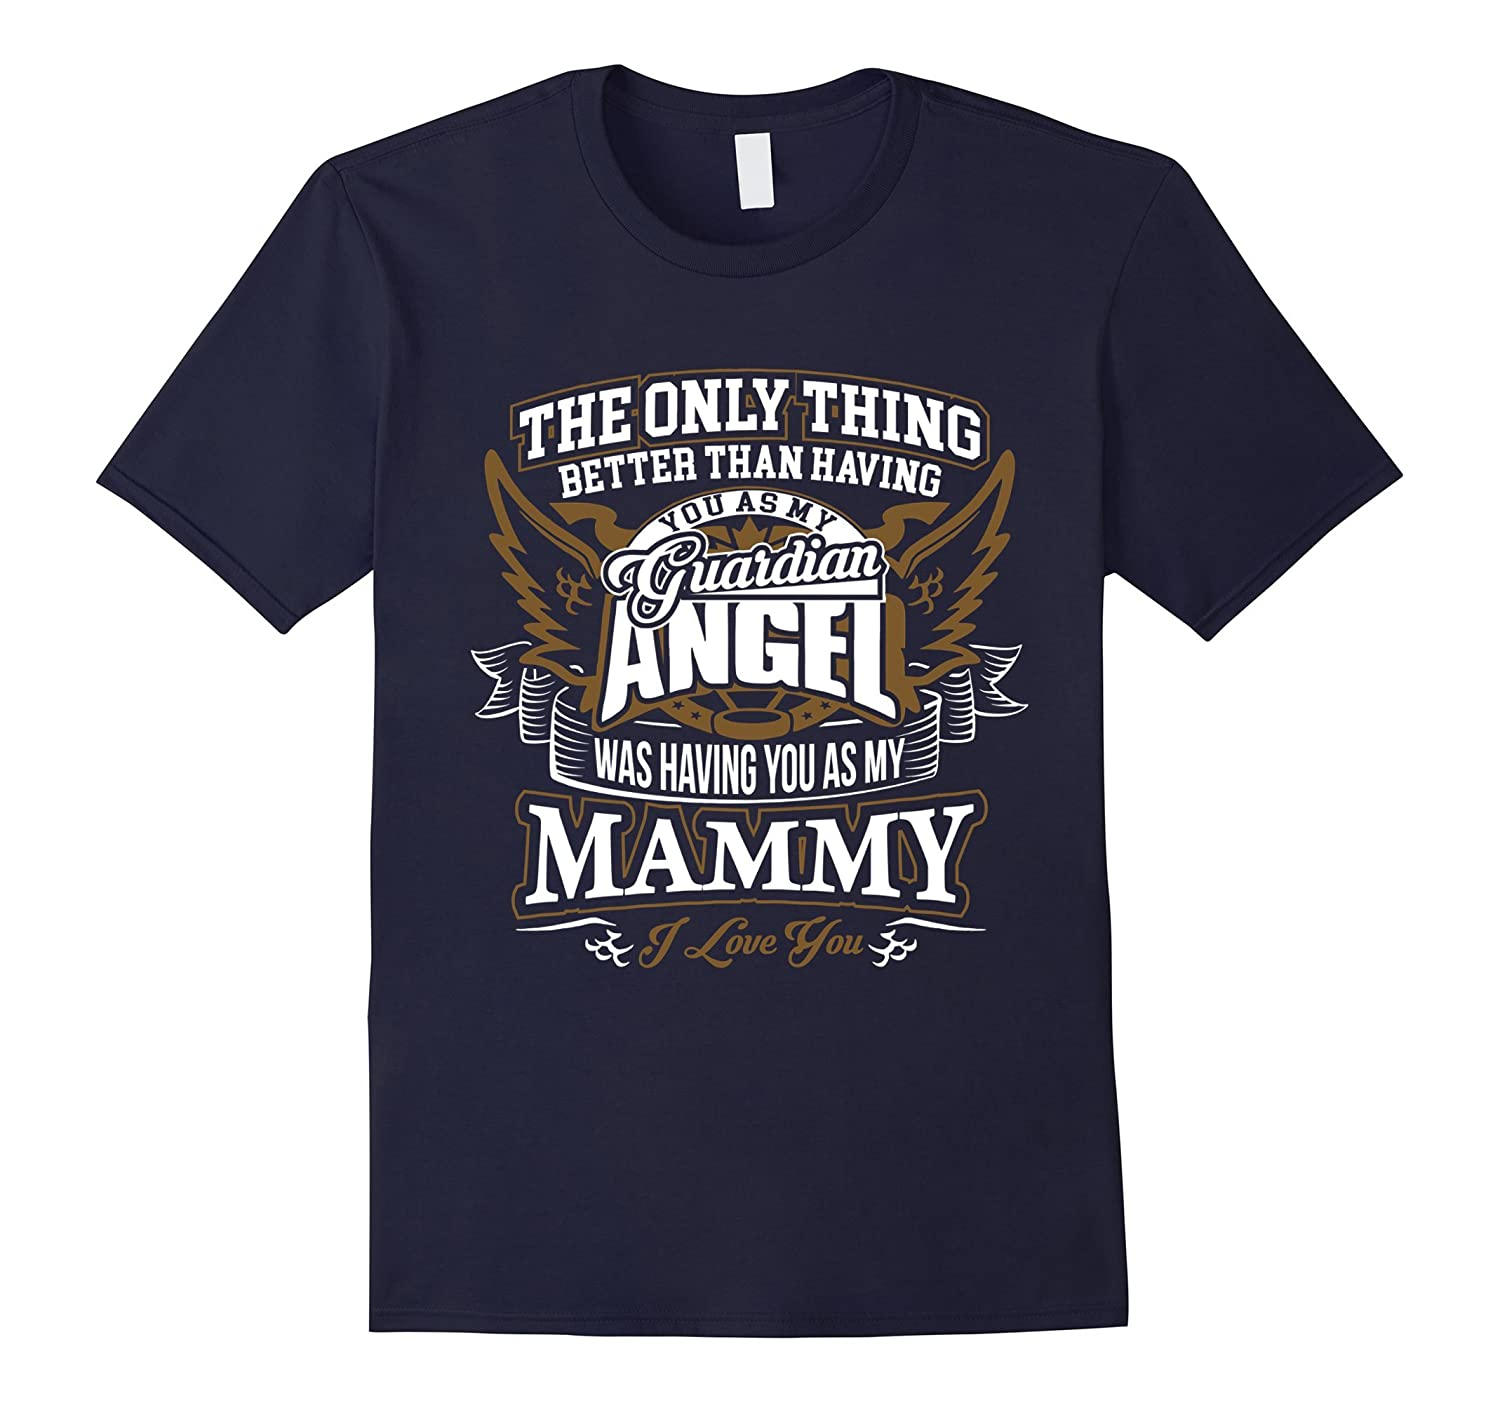 Its Better to have you Mammy than have you Guardian Angel-RT